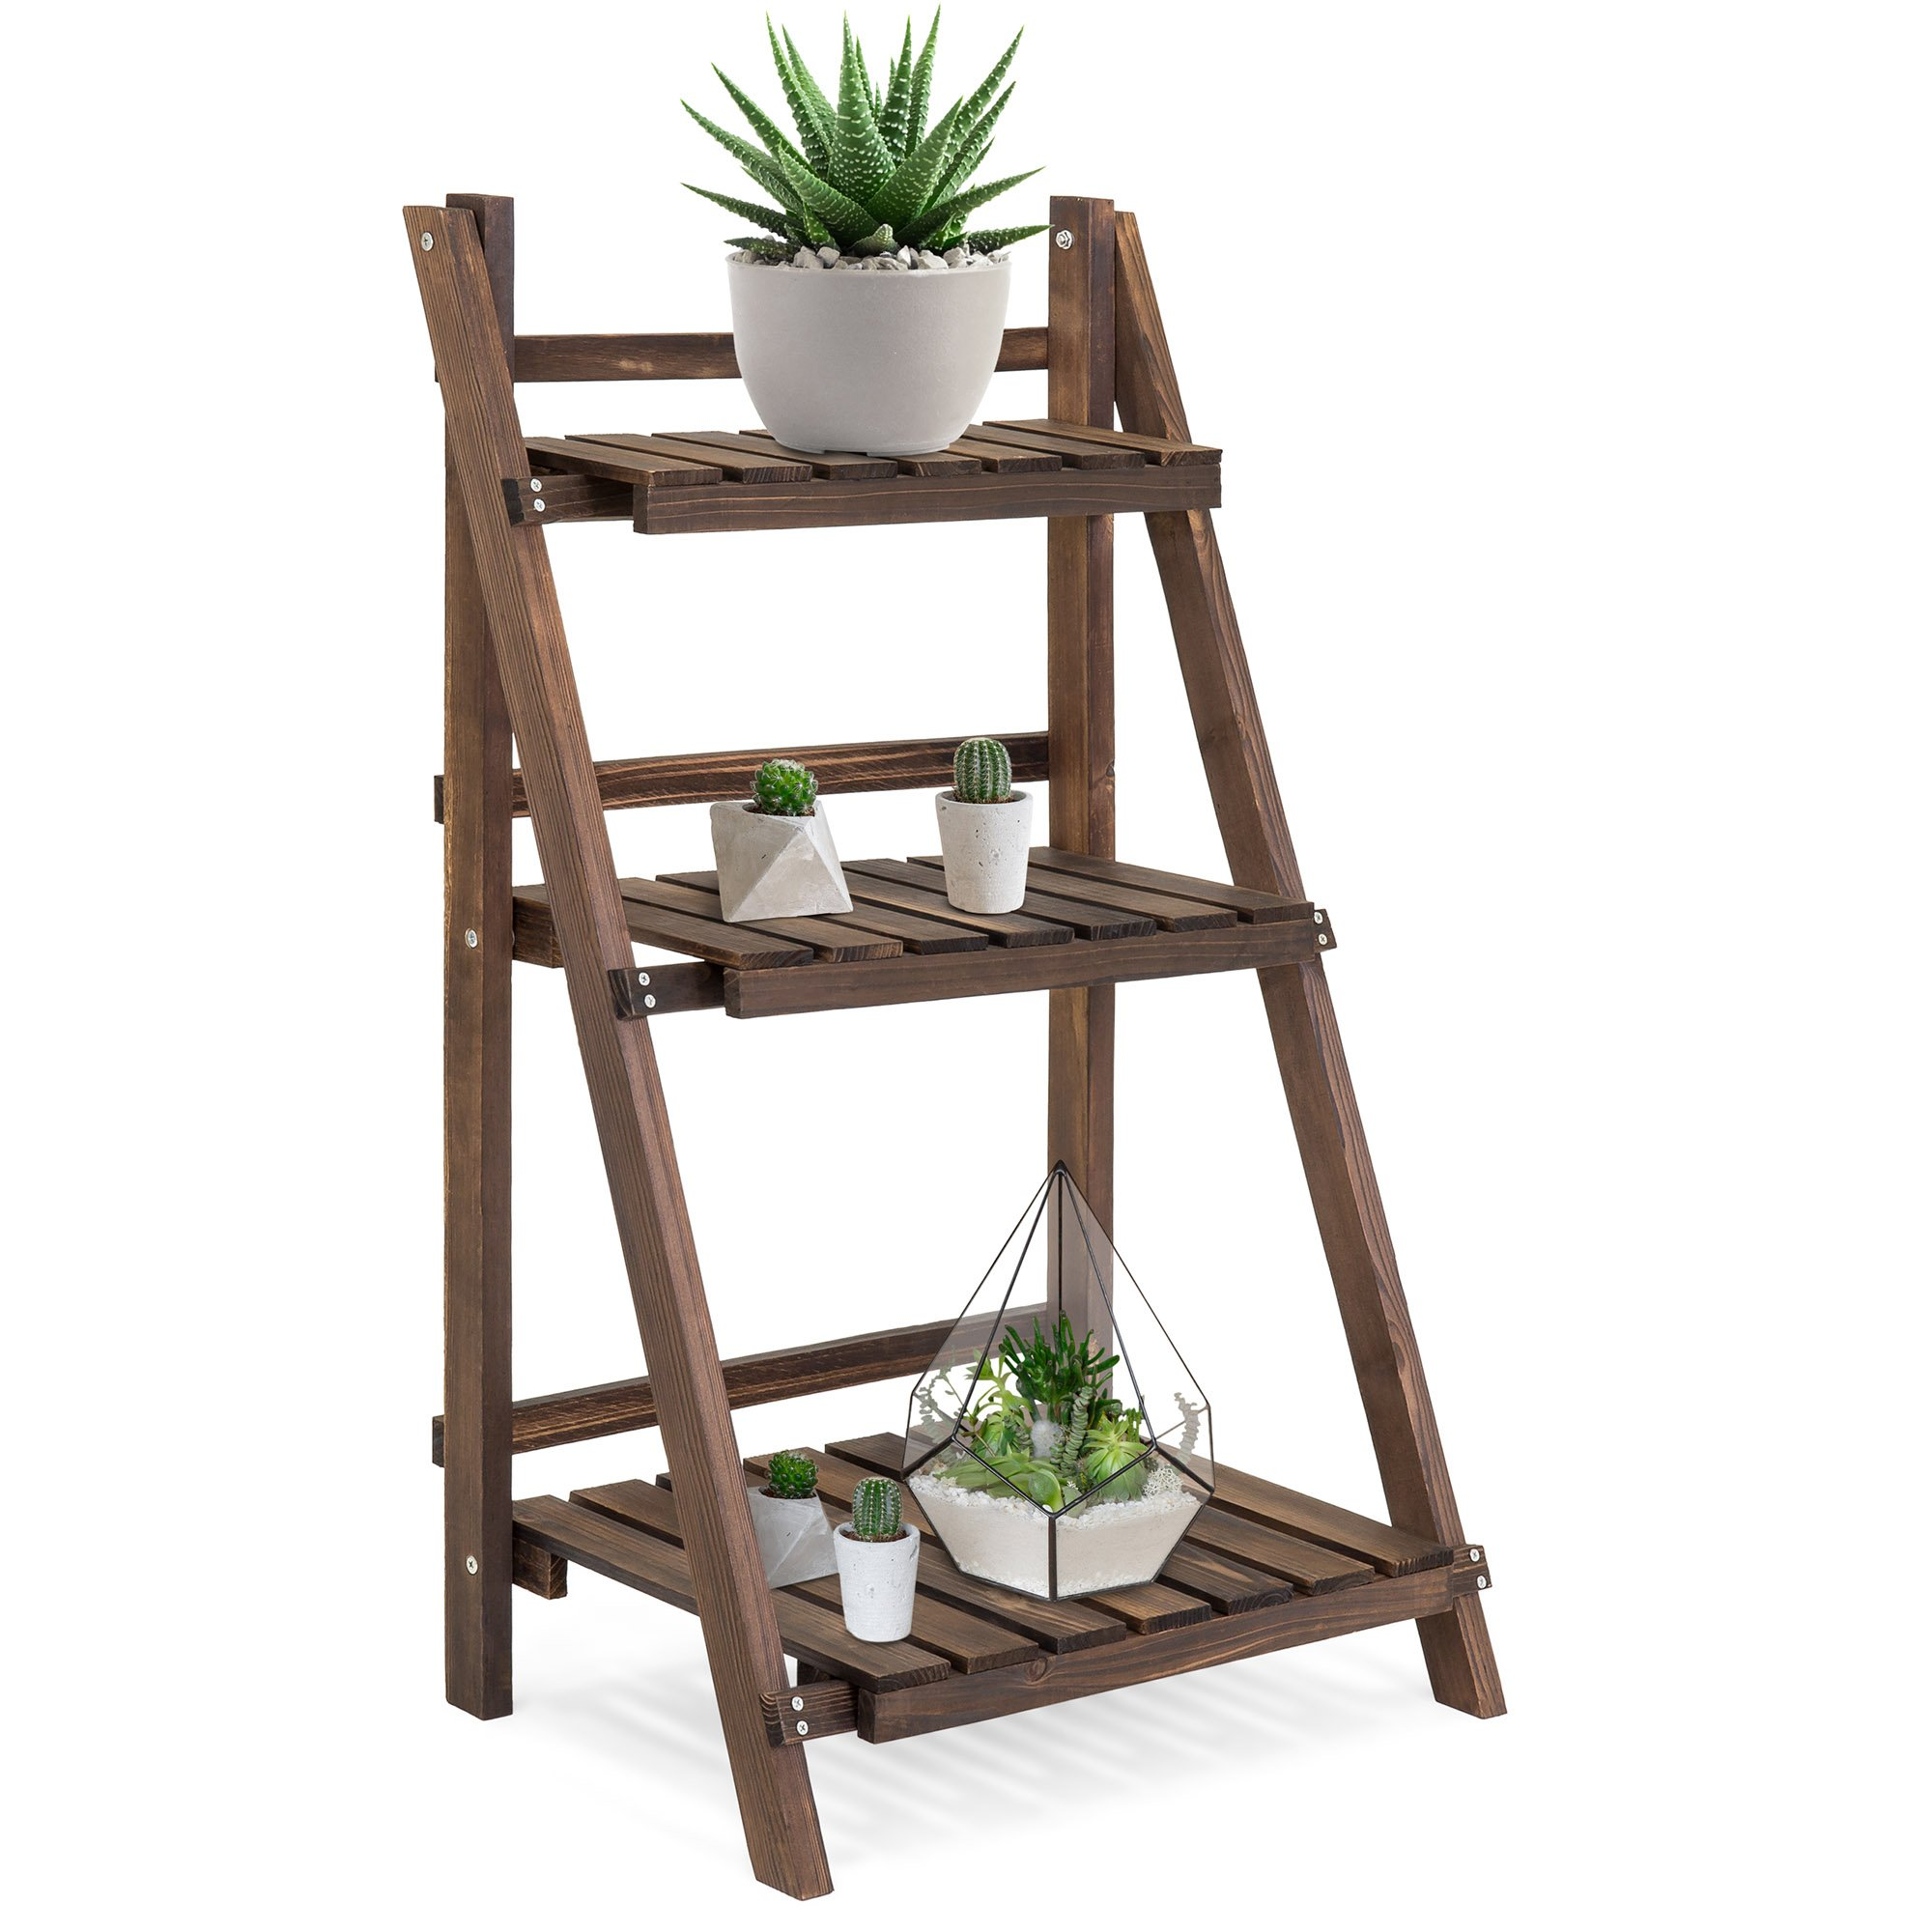 Best Choice Products 3-Tier Indoor Outdoor Portable Folding Multi-Purpose Rustic Wood Flower Plant Pot Display Stand